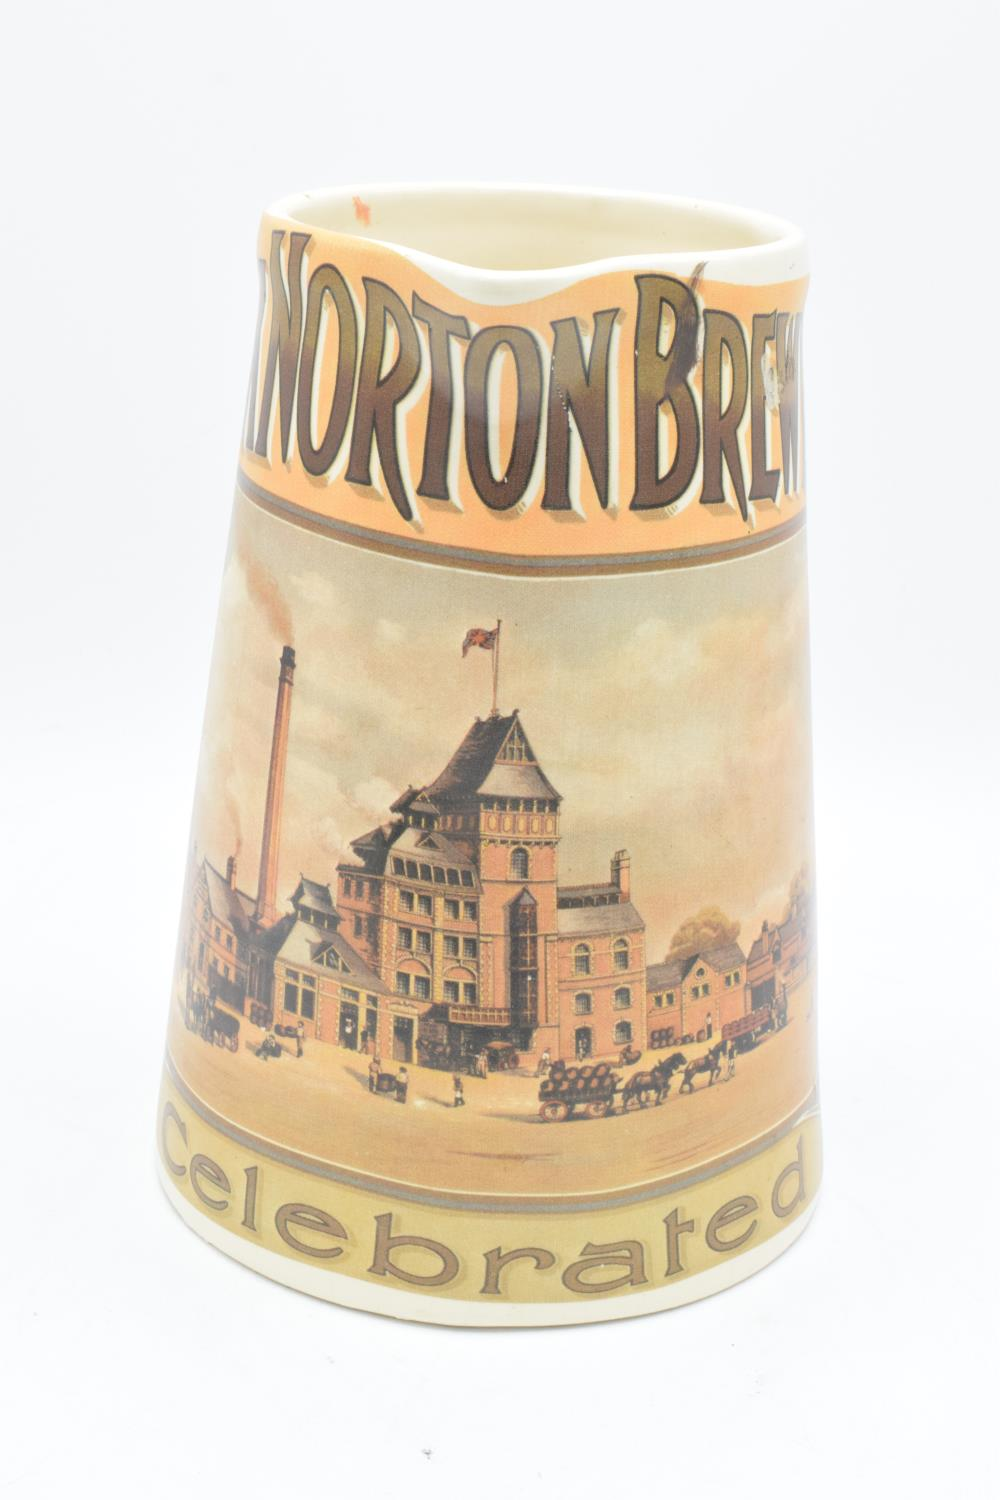 'The Hook Norton Brewery Co' late 20th century transfer print pub jug. In good condition with no - Image 3 of 5